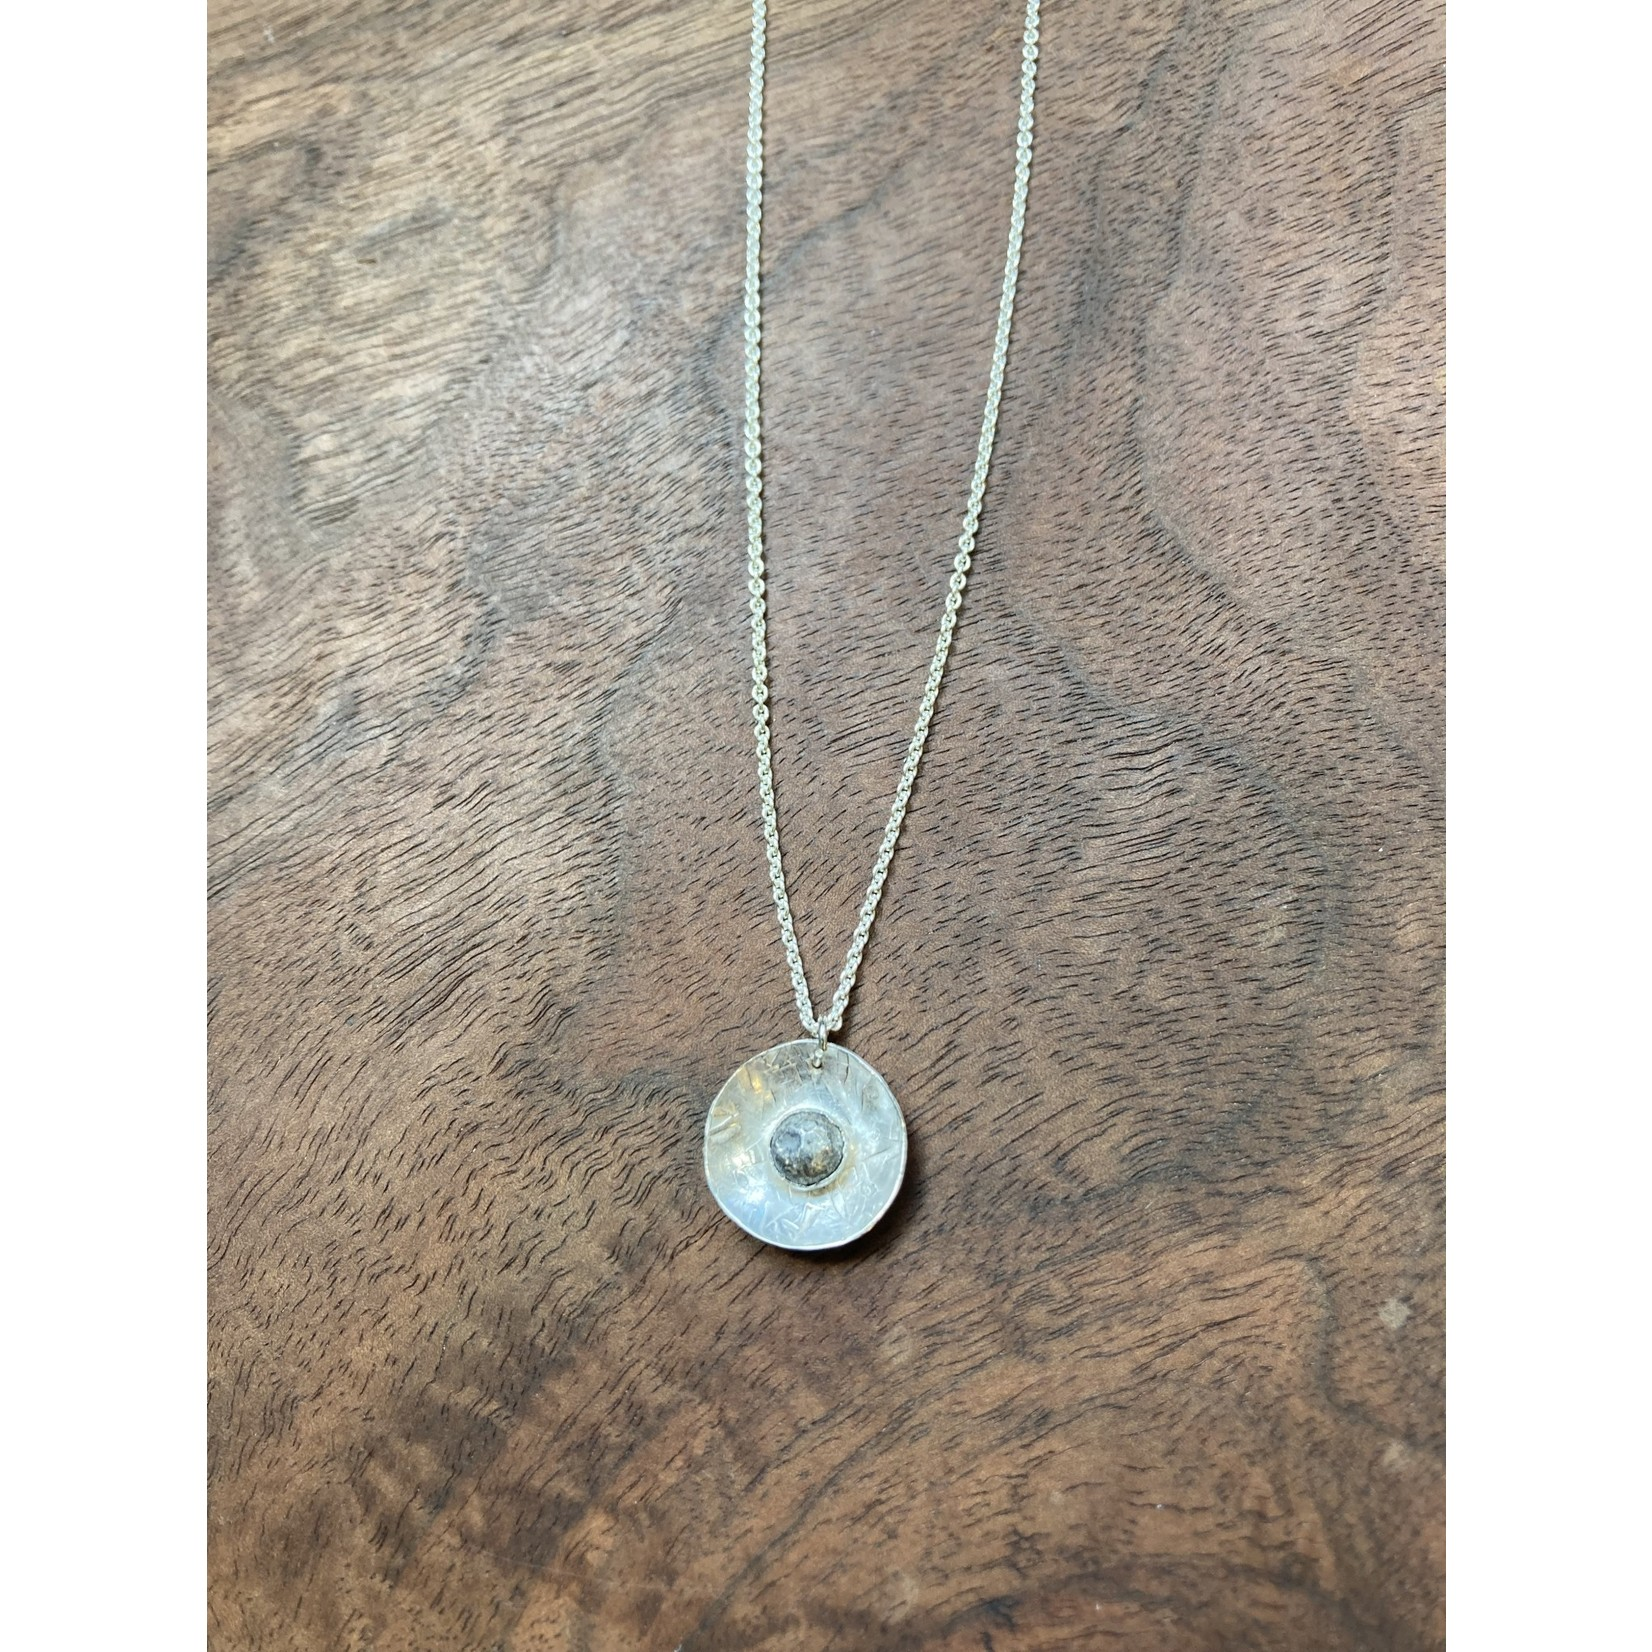 Jeanne Shuff Jeanne Marie Jewelry | #12 Sterling Nugget in Sterling Disk Necklace on Sterling Chain